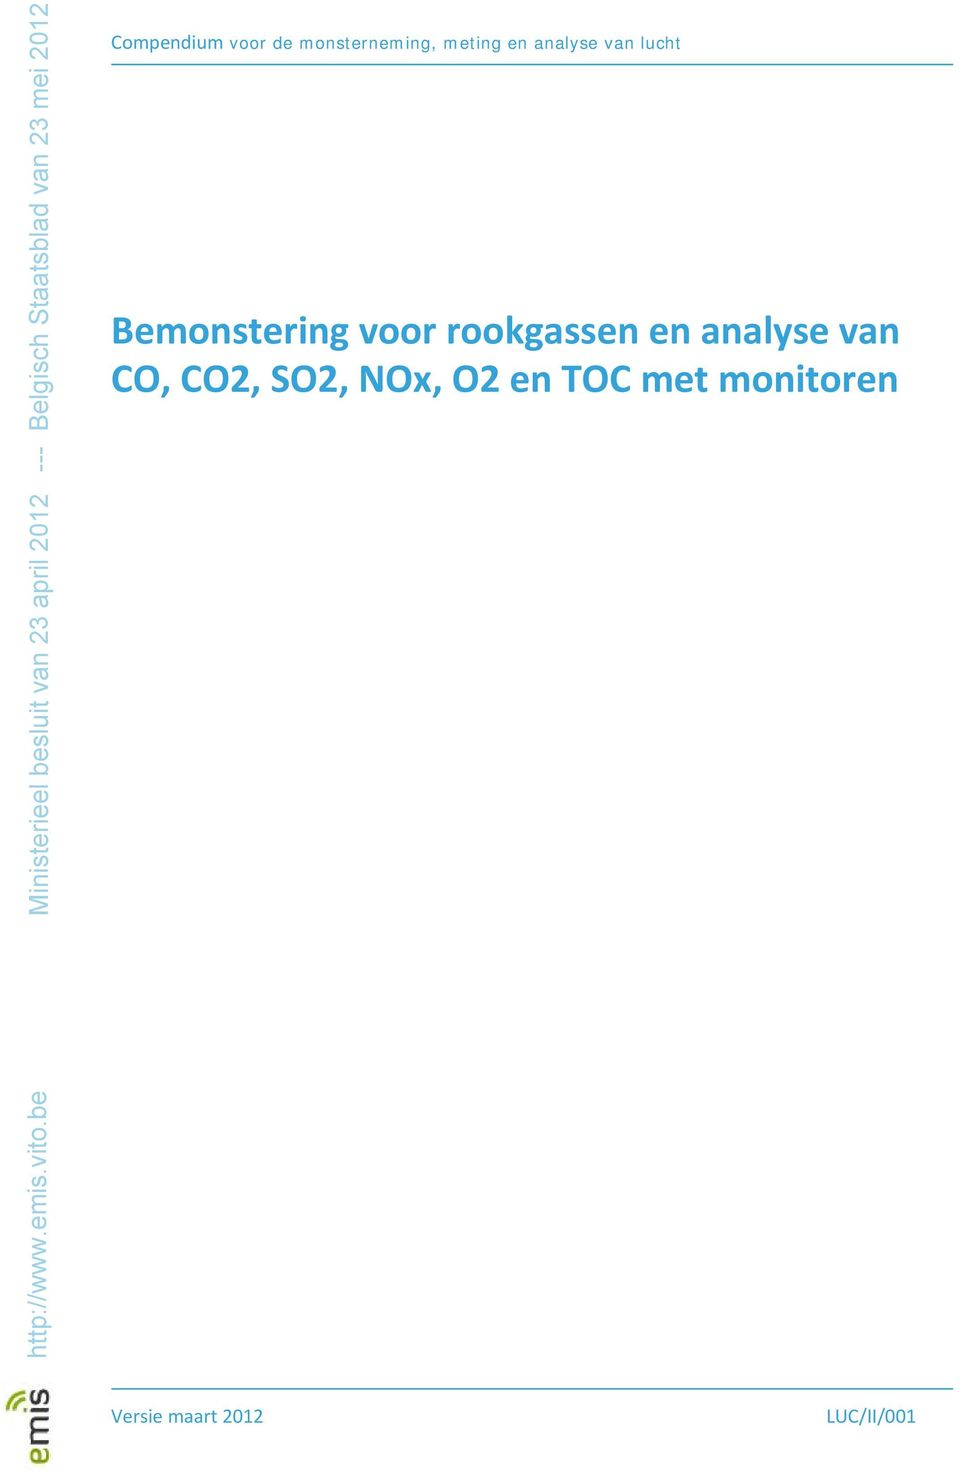 rookgassen en analyse van CO, CO2, SO2, NOx,